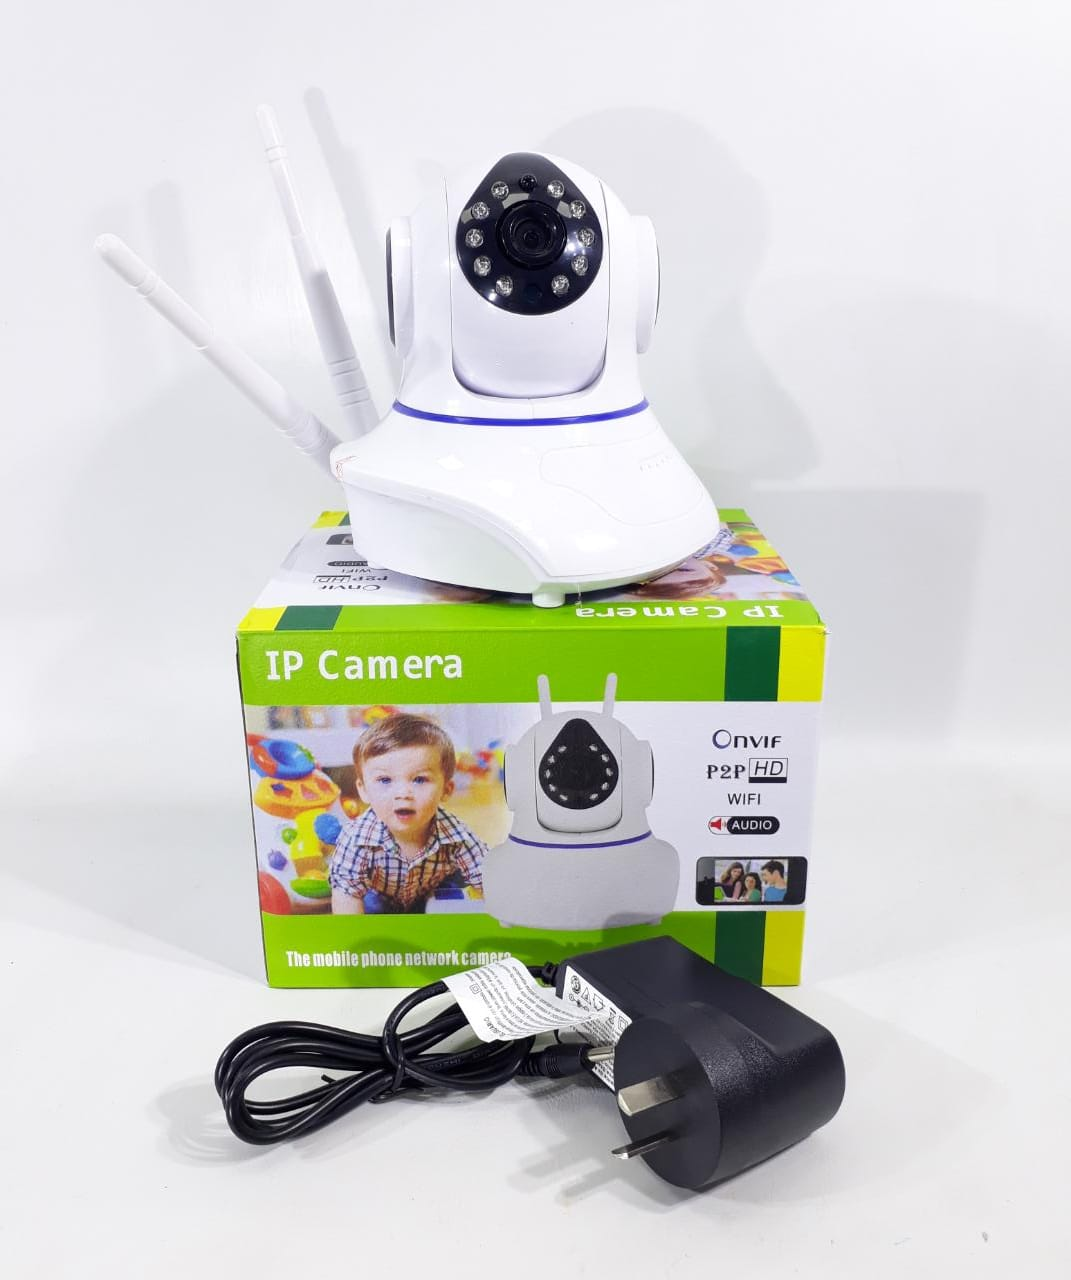 ELG CAMARA IP WIFI/AUDIO JGT CS-180BW-2B